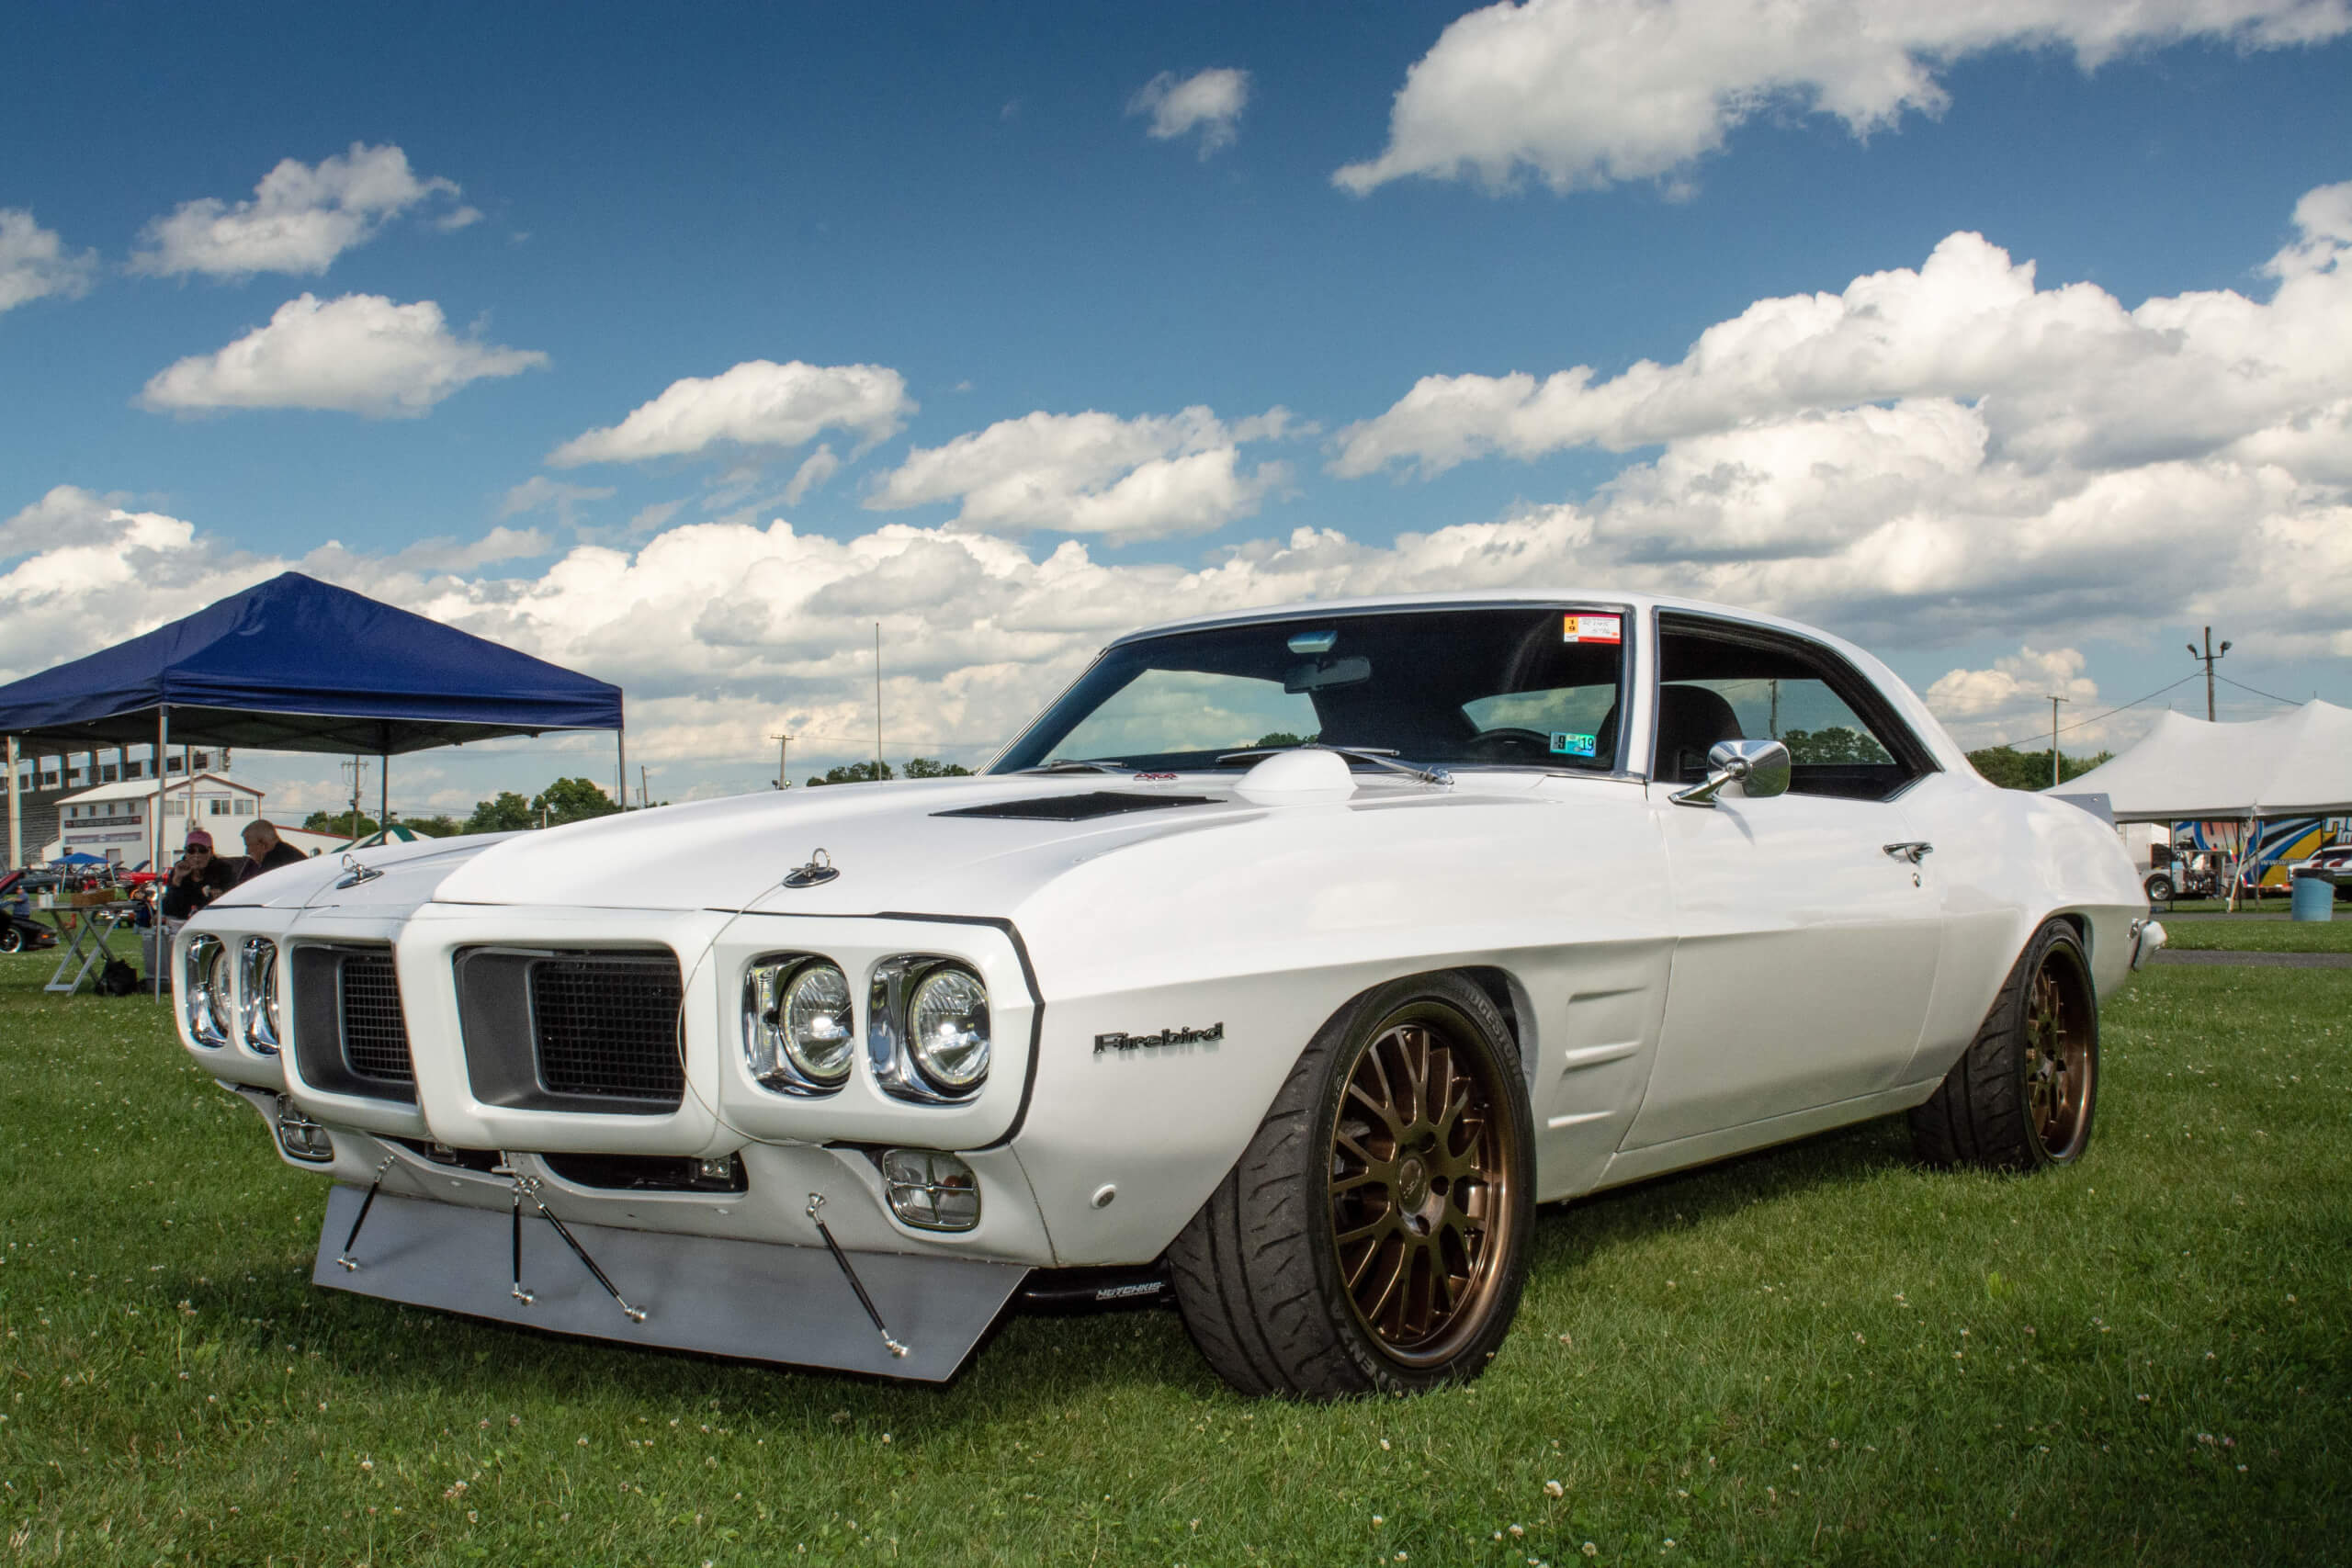 Jason Rescued This 1969 Pontiac Firebird From A Tree And Built It Into A Pro Touring Machine The Transmission